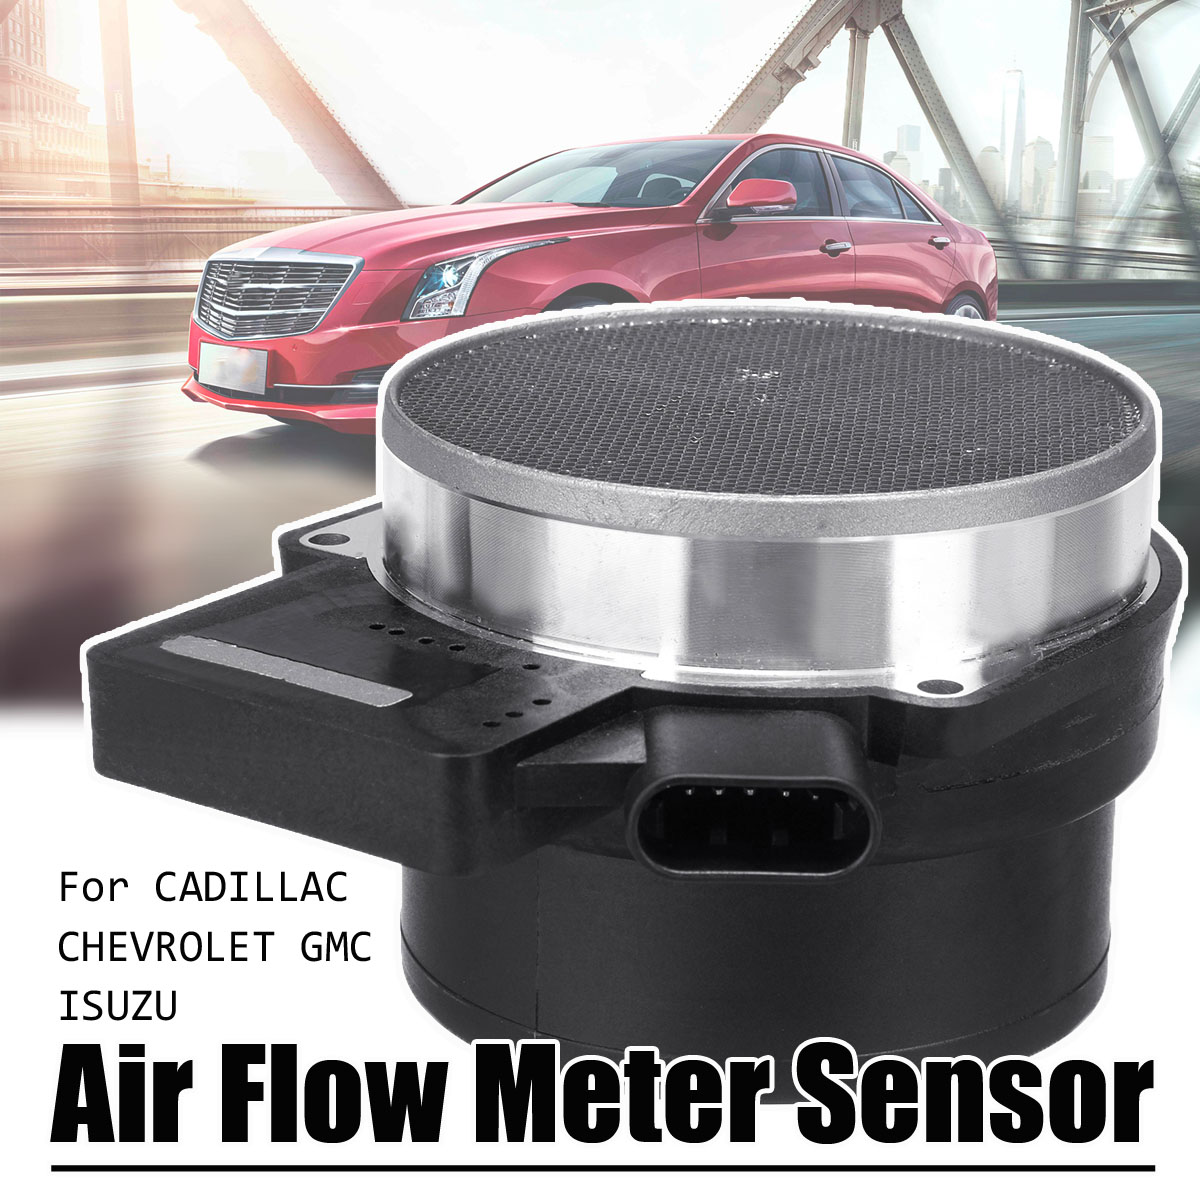 MAF Mass Air Flow Meter Sensor for Chevrolet for Cadillac for GMC ISUZU 25318411 Auto Replacement Parts Air Flow Meter